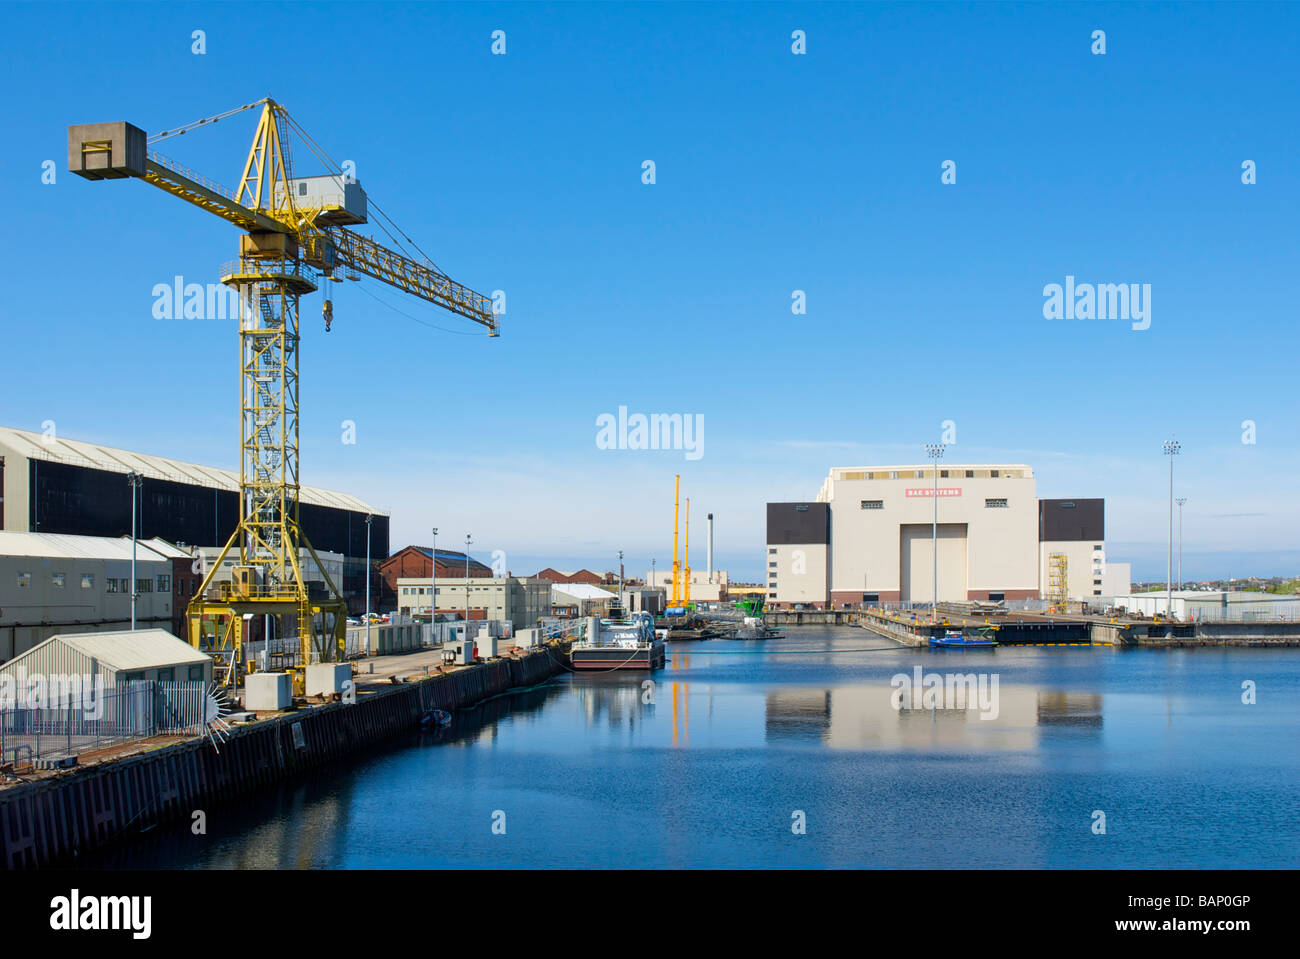 BAE Systems and Devonshire Dock, Barrow-in-Furness, Cumbria, England UK - Stock Image